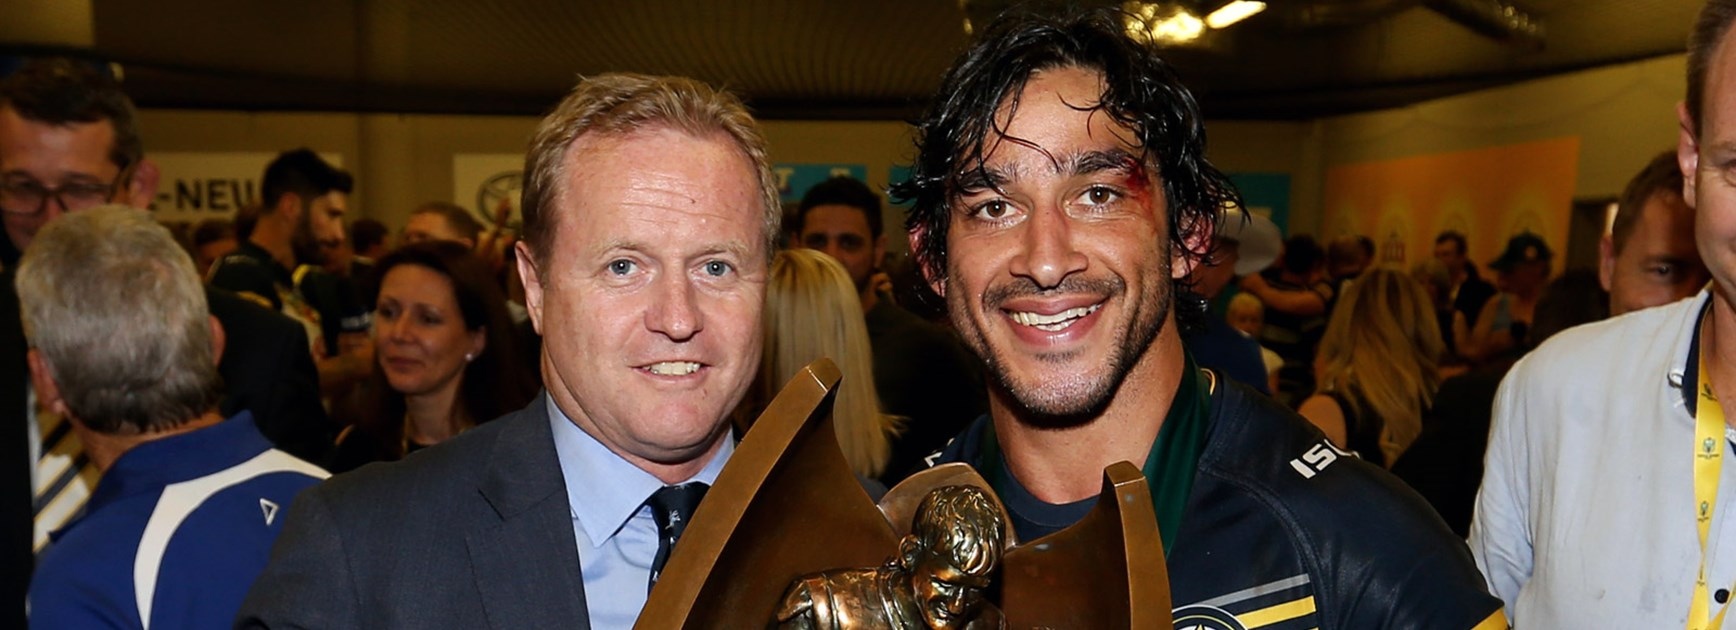 Departing NRL CEO Dave Smith with victorious Cowboys co-captain Johnathan Thurston following the 2015 Grand Final.